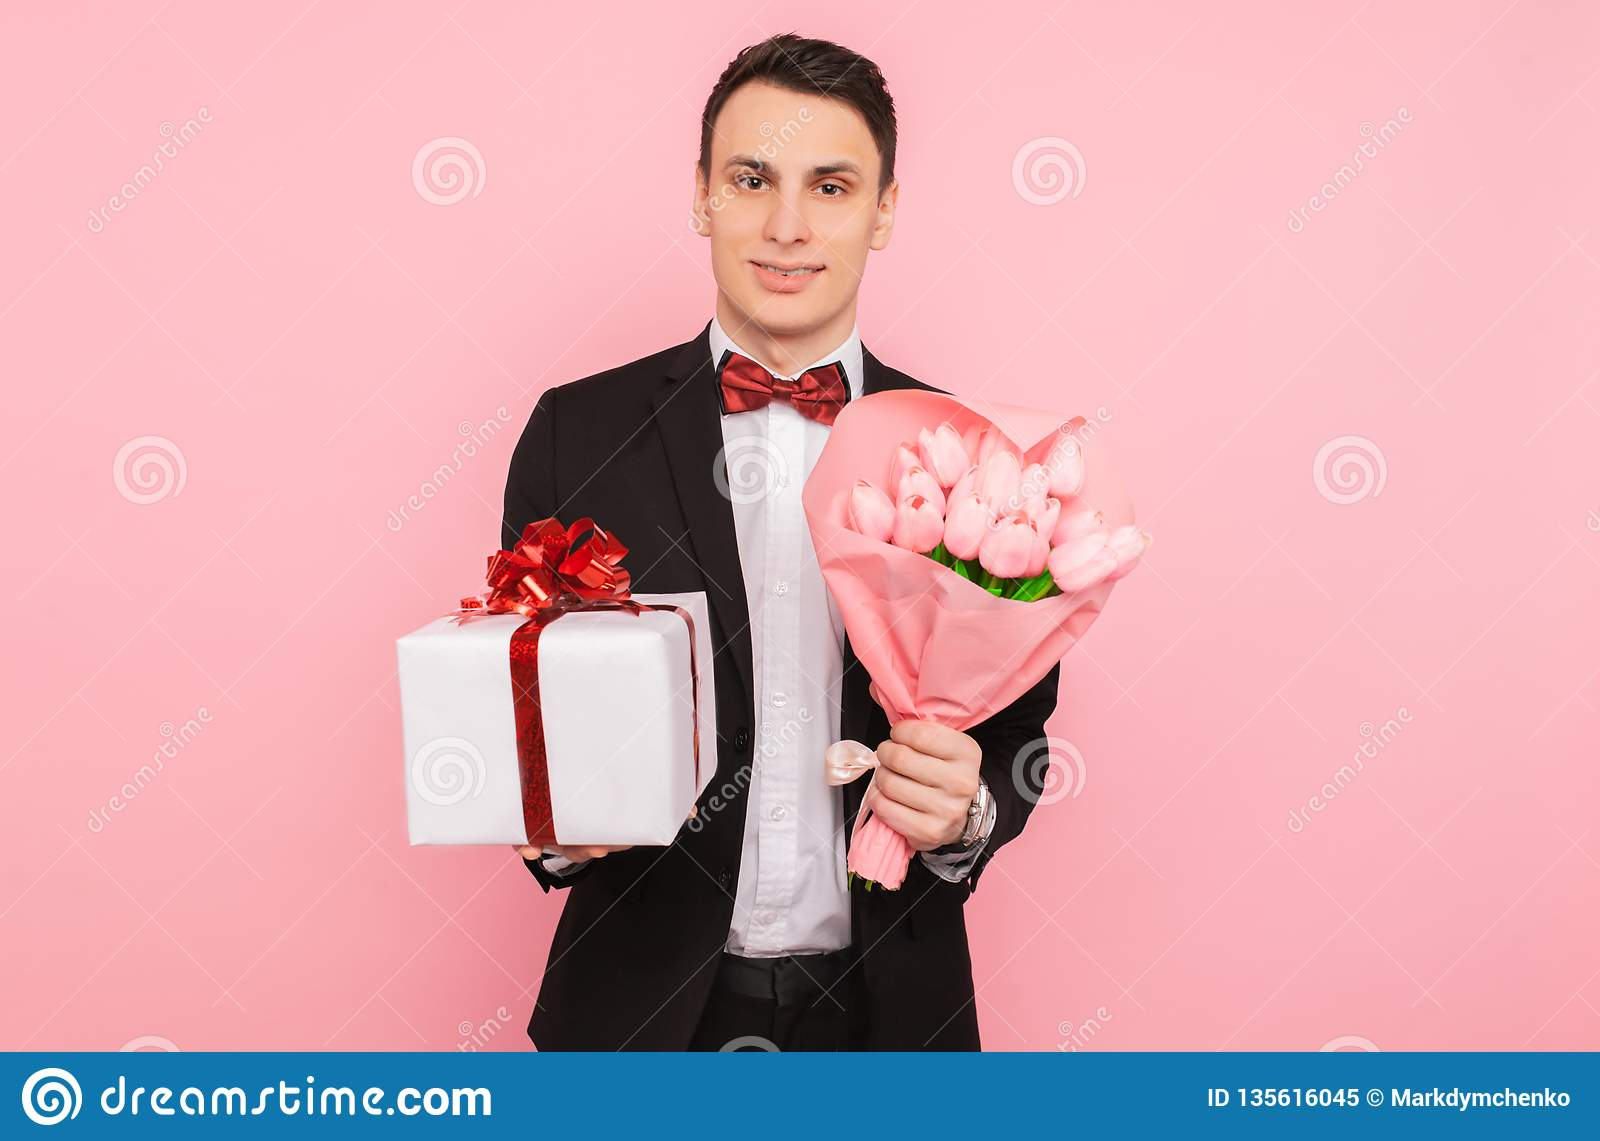 Elegant man, in a suit, with a bouquet of flowers, and a gift box, on a pink background, the concept of women`s day